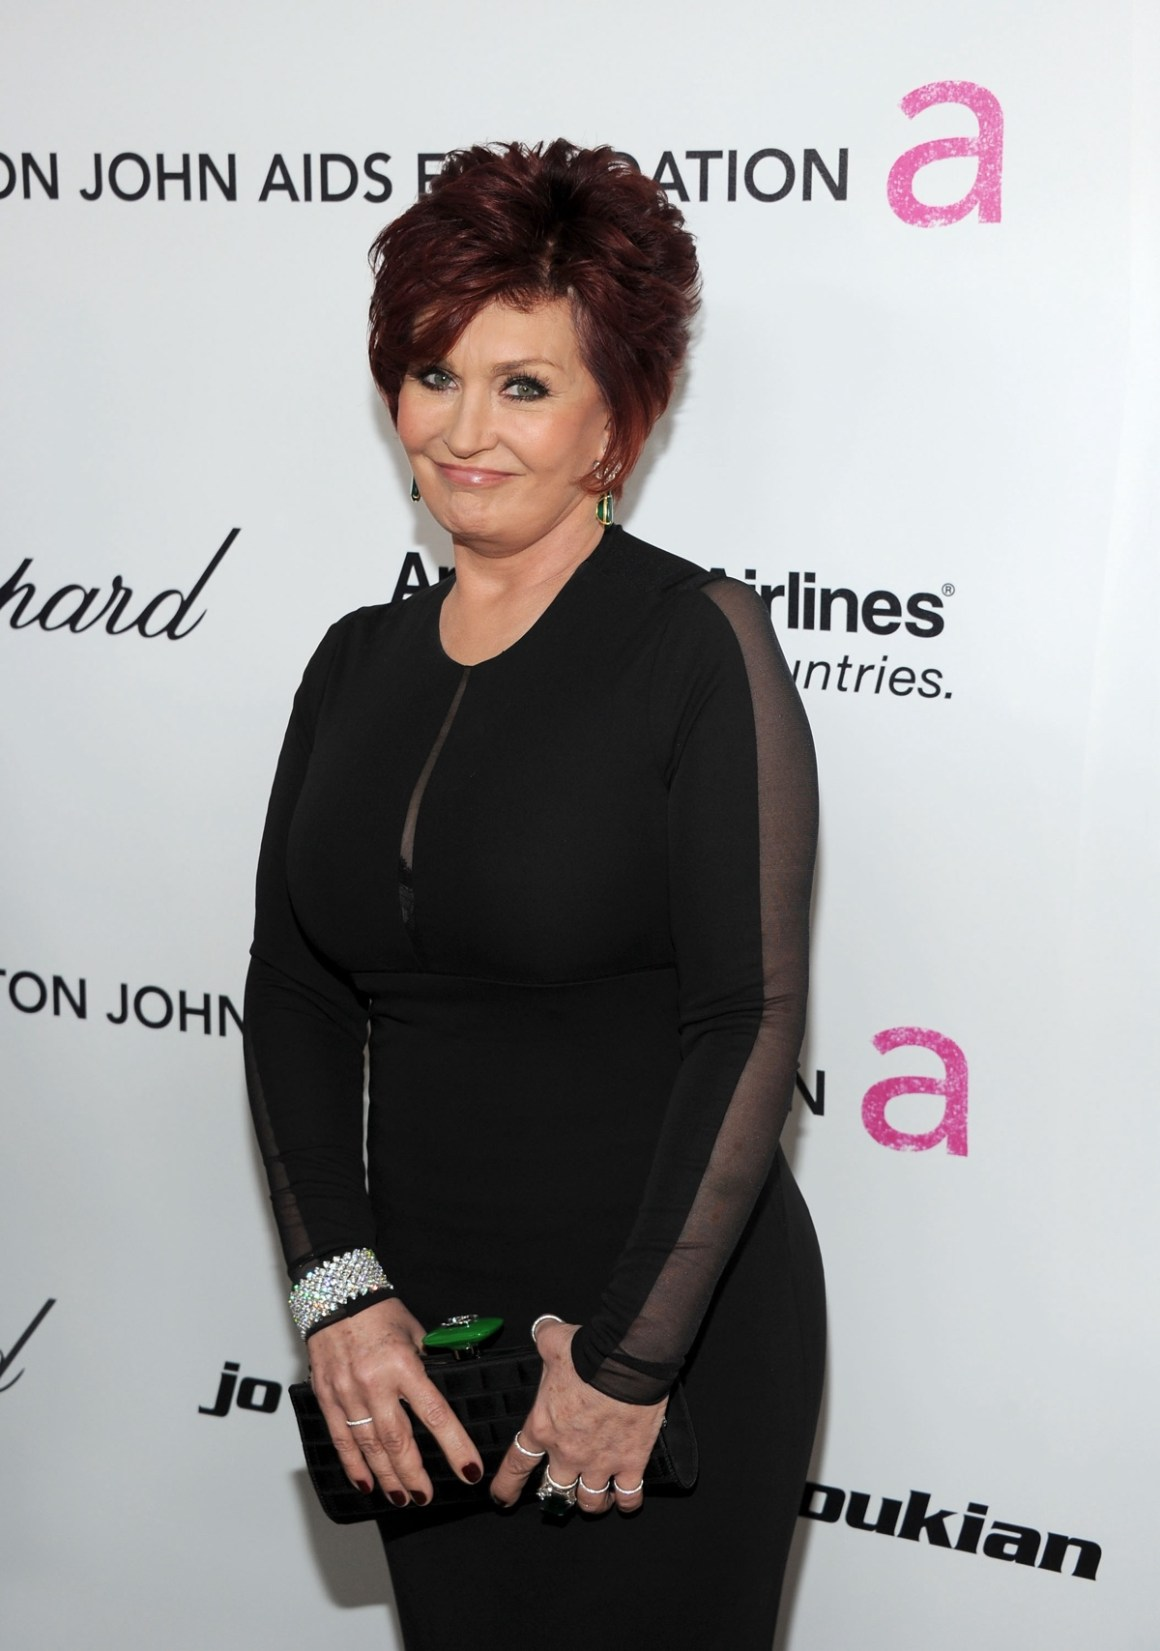 Sharon Osbourne 19th Annual Elton John AIDS Foundation Academy Awards Viewing Party - Red Carpet